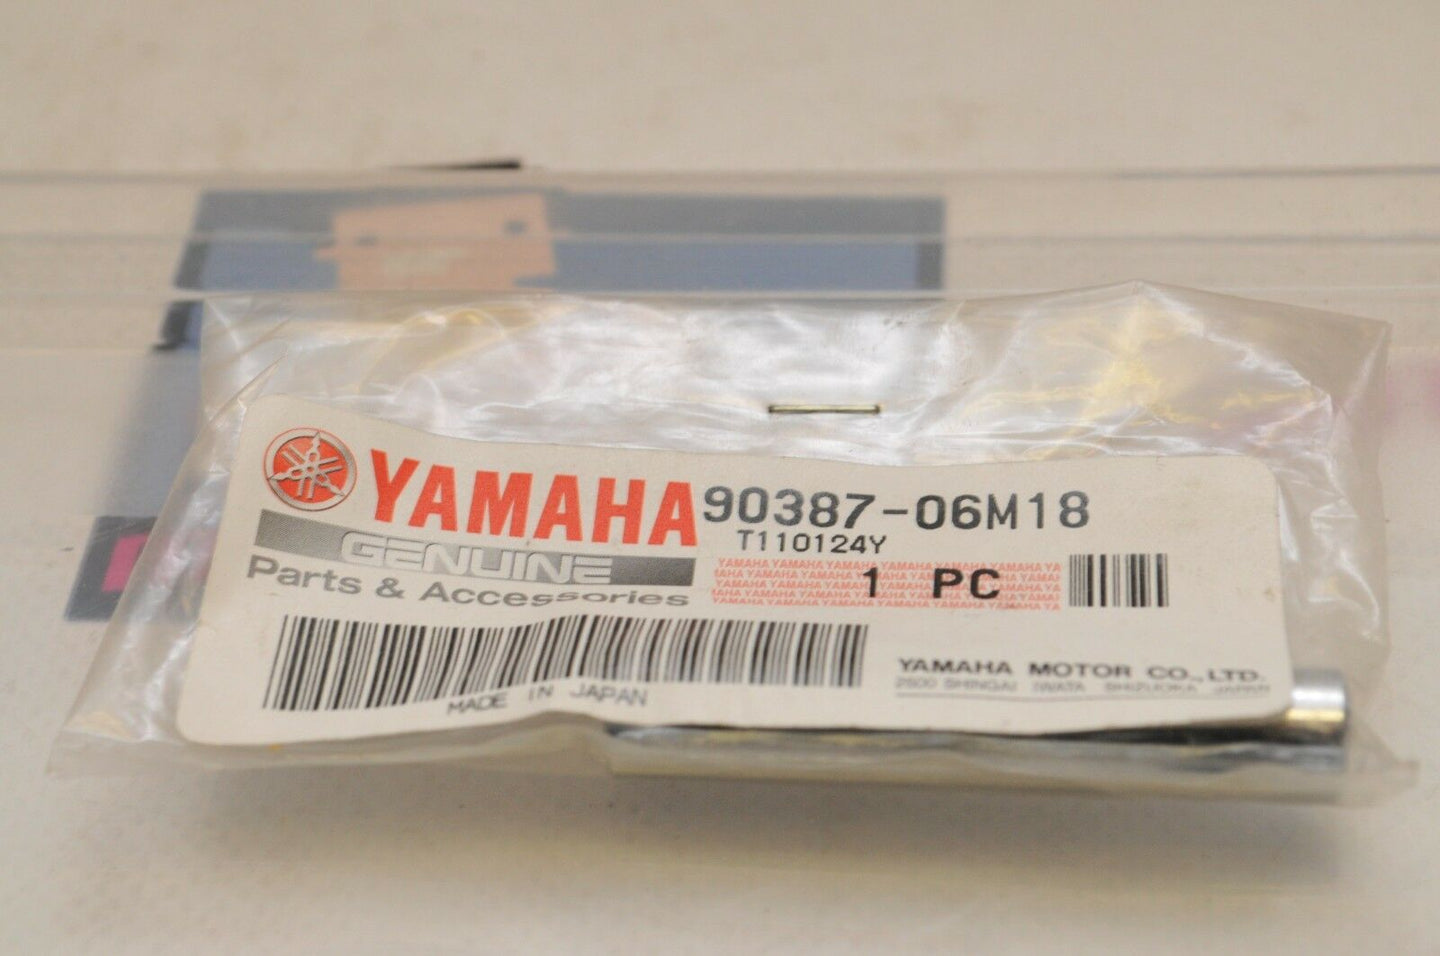 NEW NOS OEM YAMAHA MARINE 90387-06M18 COLLAR, 25HP OUTBOARD 1988-2006++